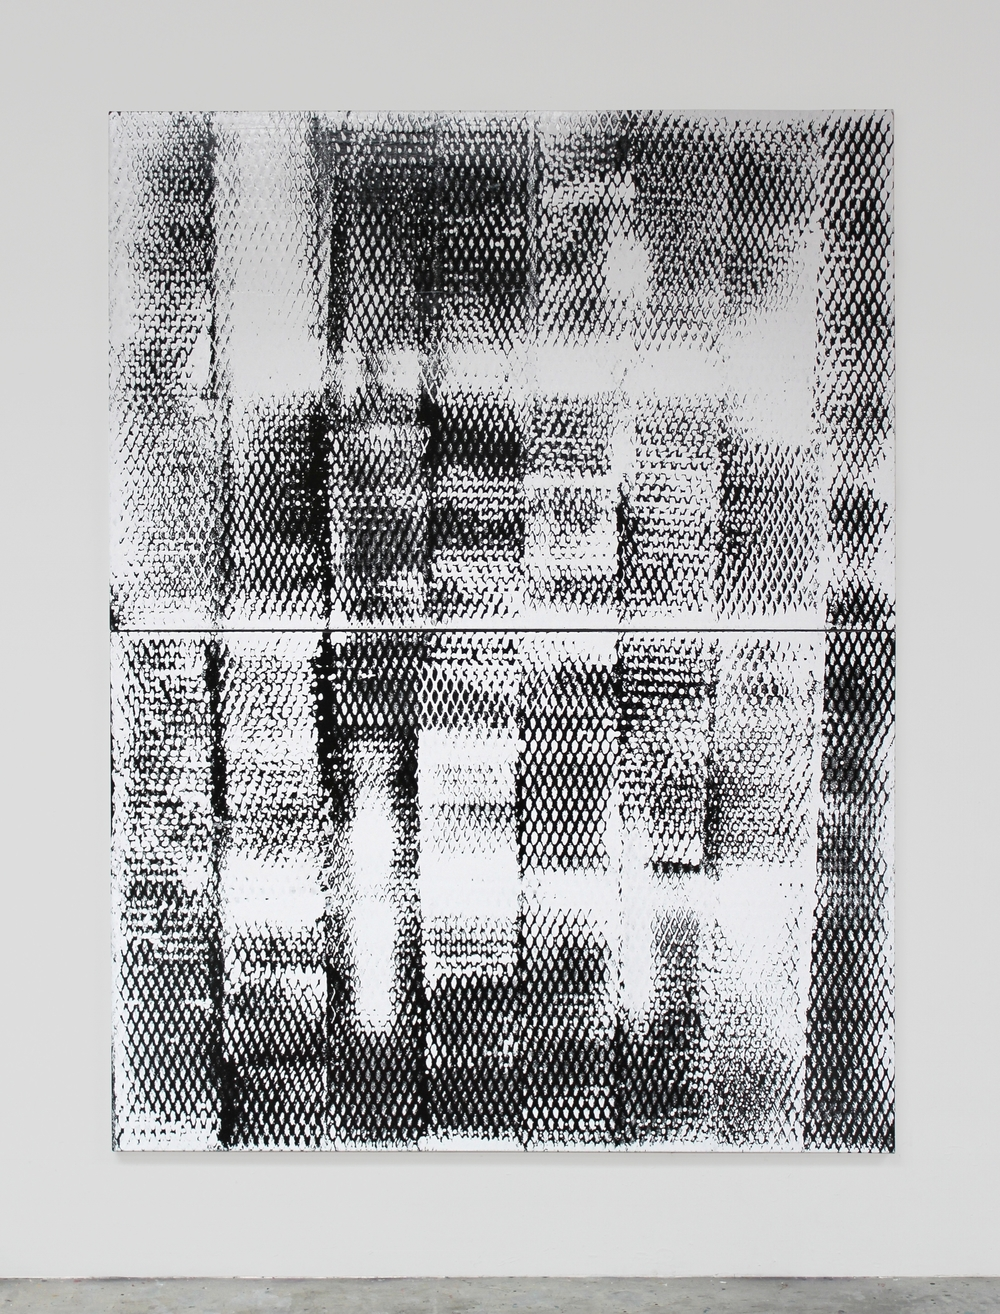 Painting #40 2015 96.25 x 72 x 1.5 inches